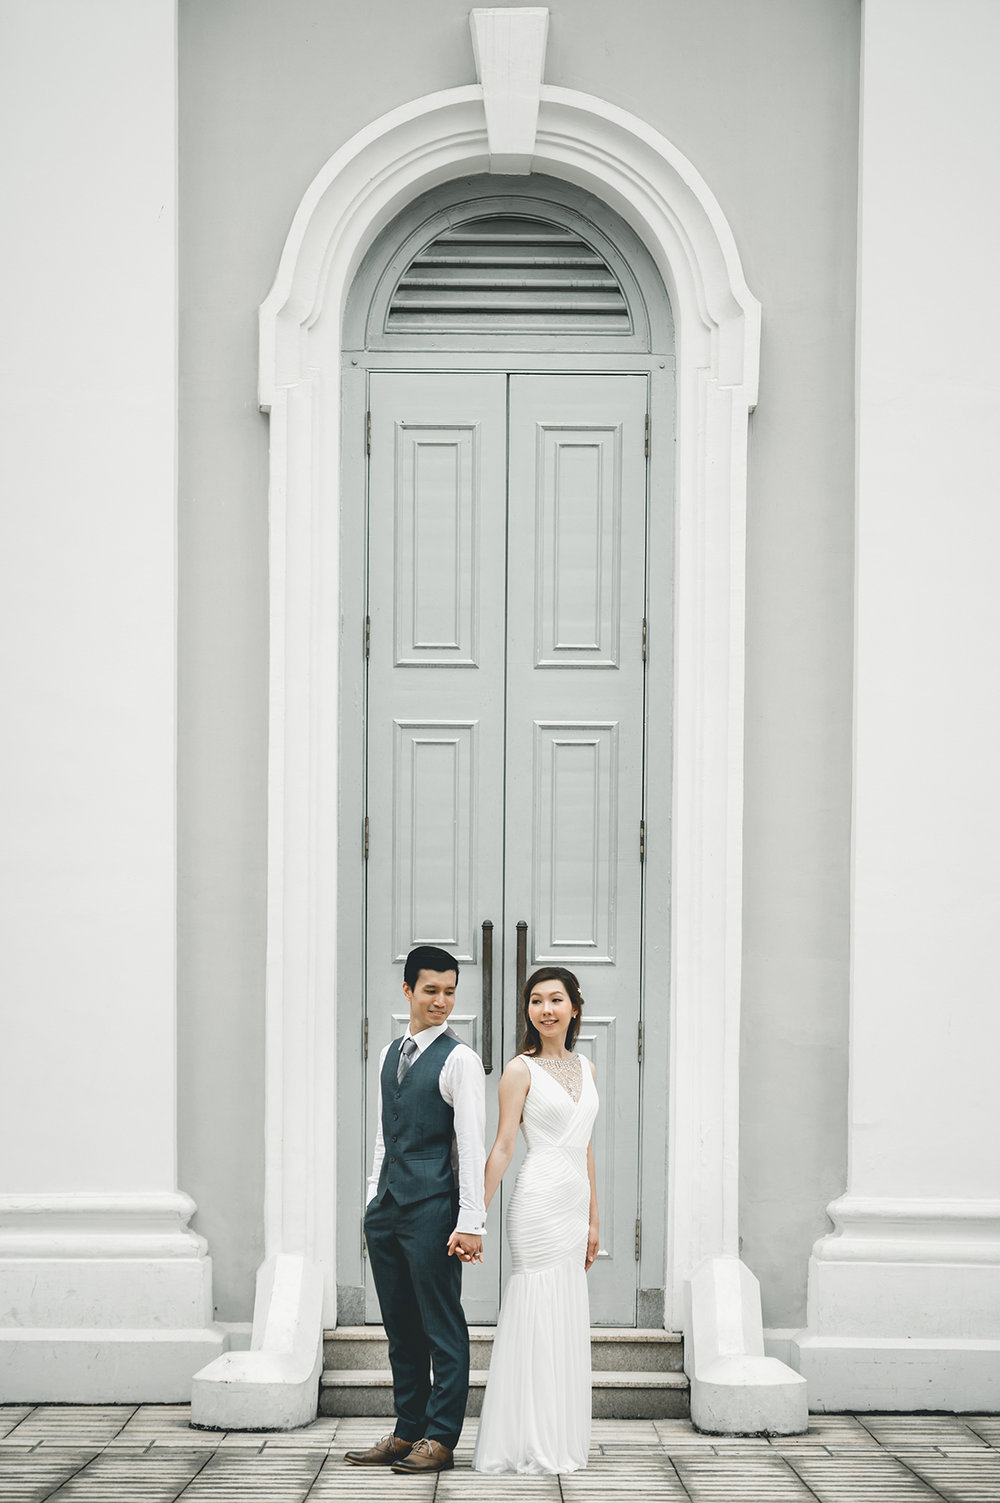 Prewedding National Museum 00006b.JPG